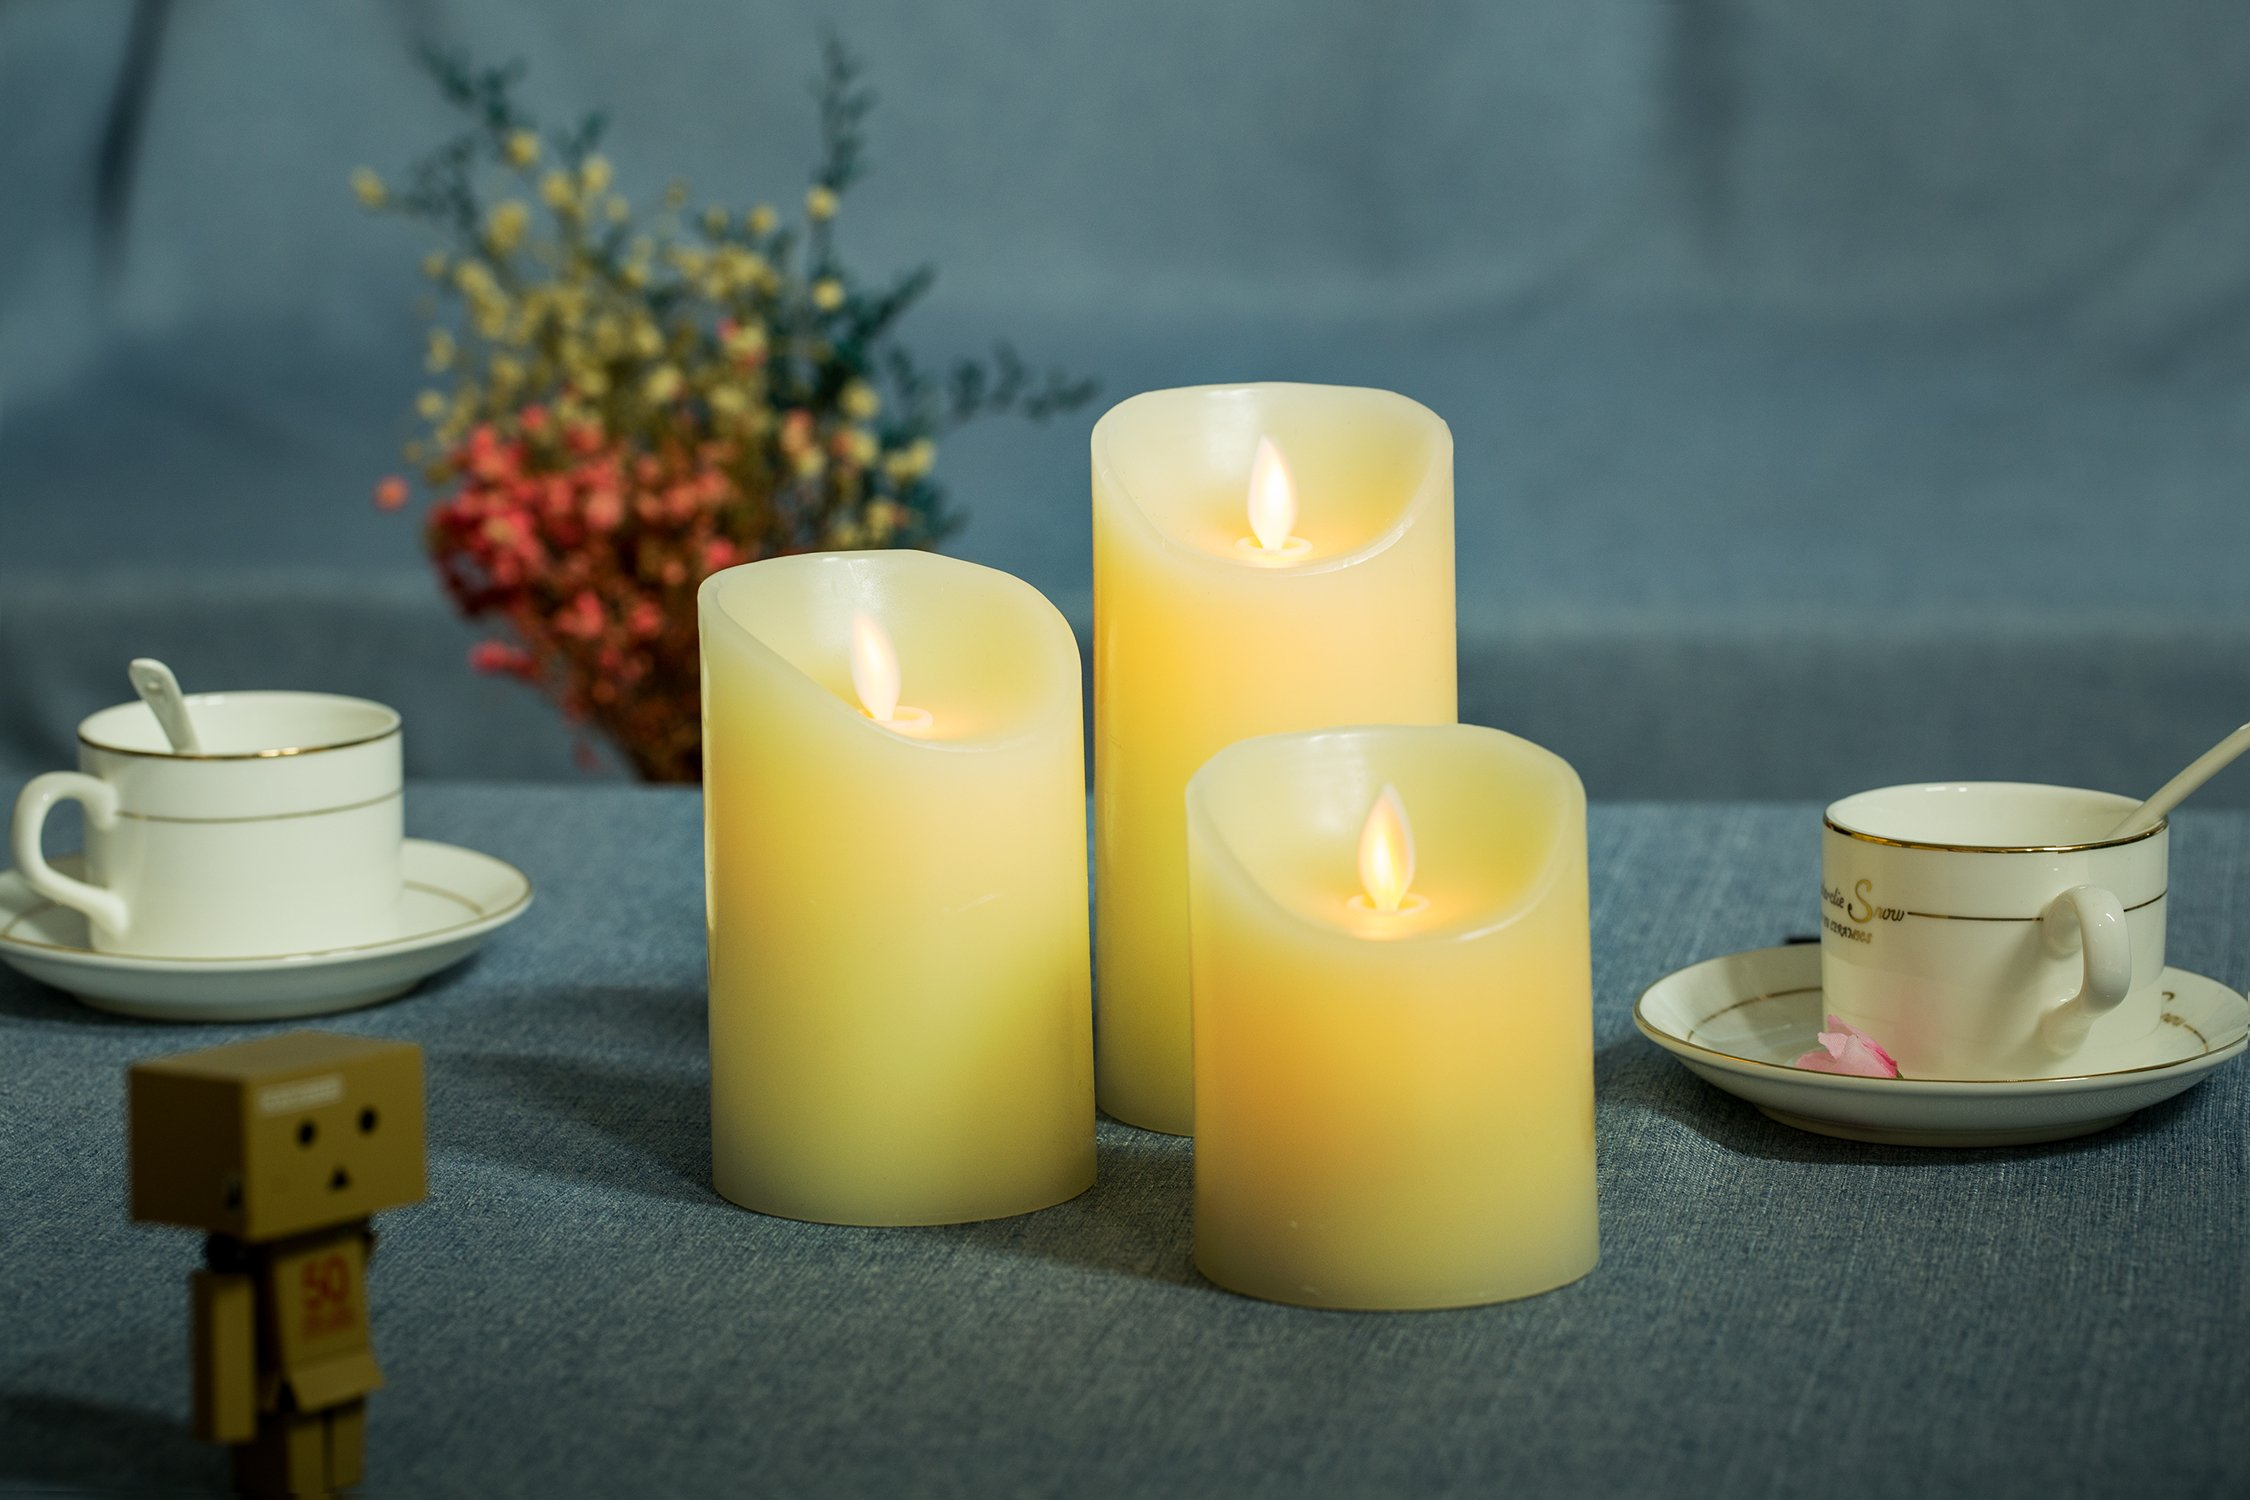 Flameless Candles, TEECOO Flickering LED Candles Φ3.15'' x H 4'' 5'' 6'' Set Of 3 Real Wax Pillar Not Plastic With 10-key Remote Control Timer 300+ Hours (3, Ivory) by TEECOO (Image #6)